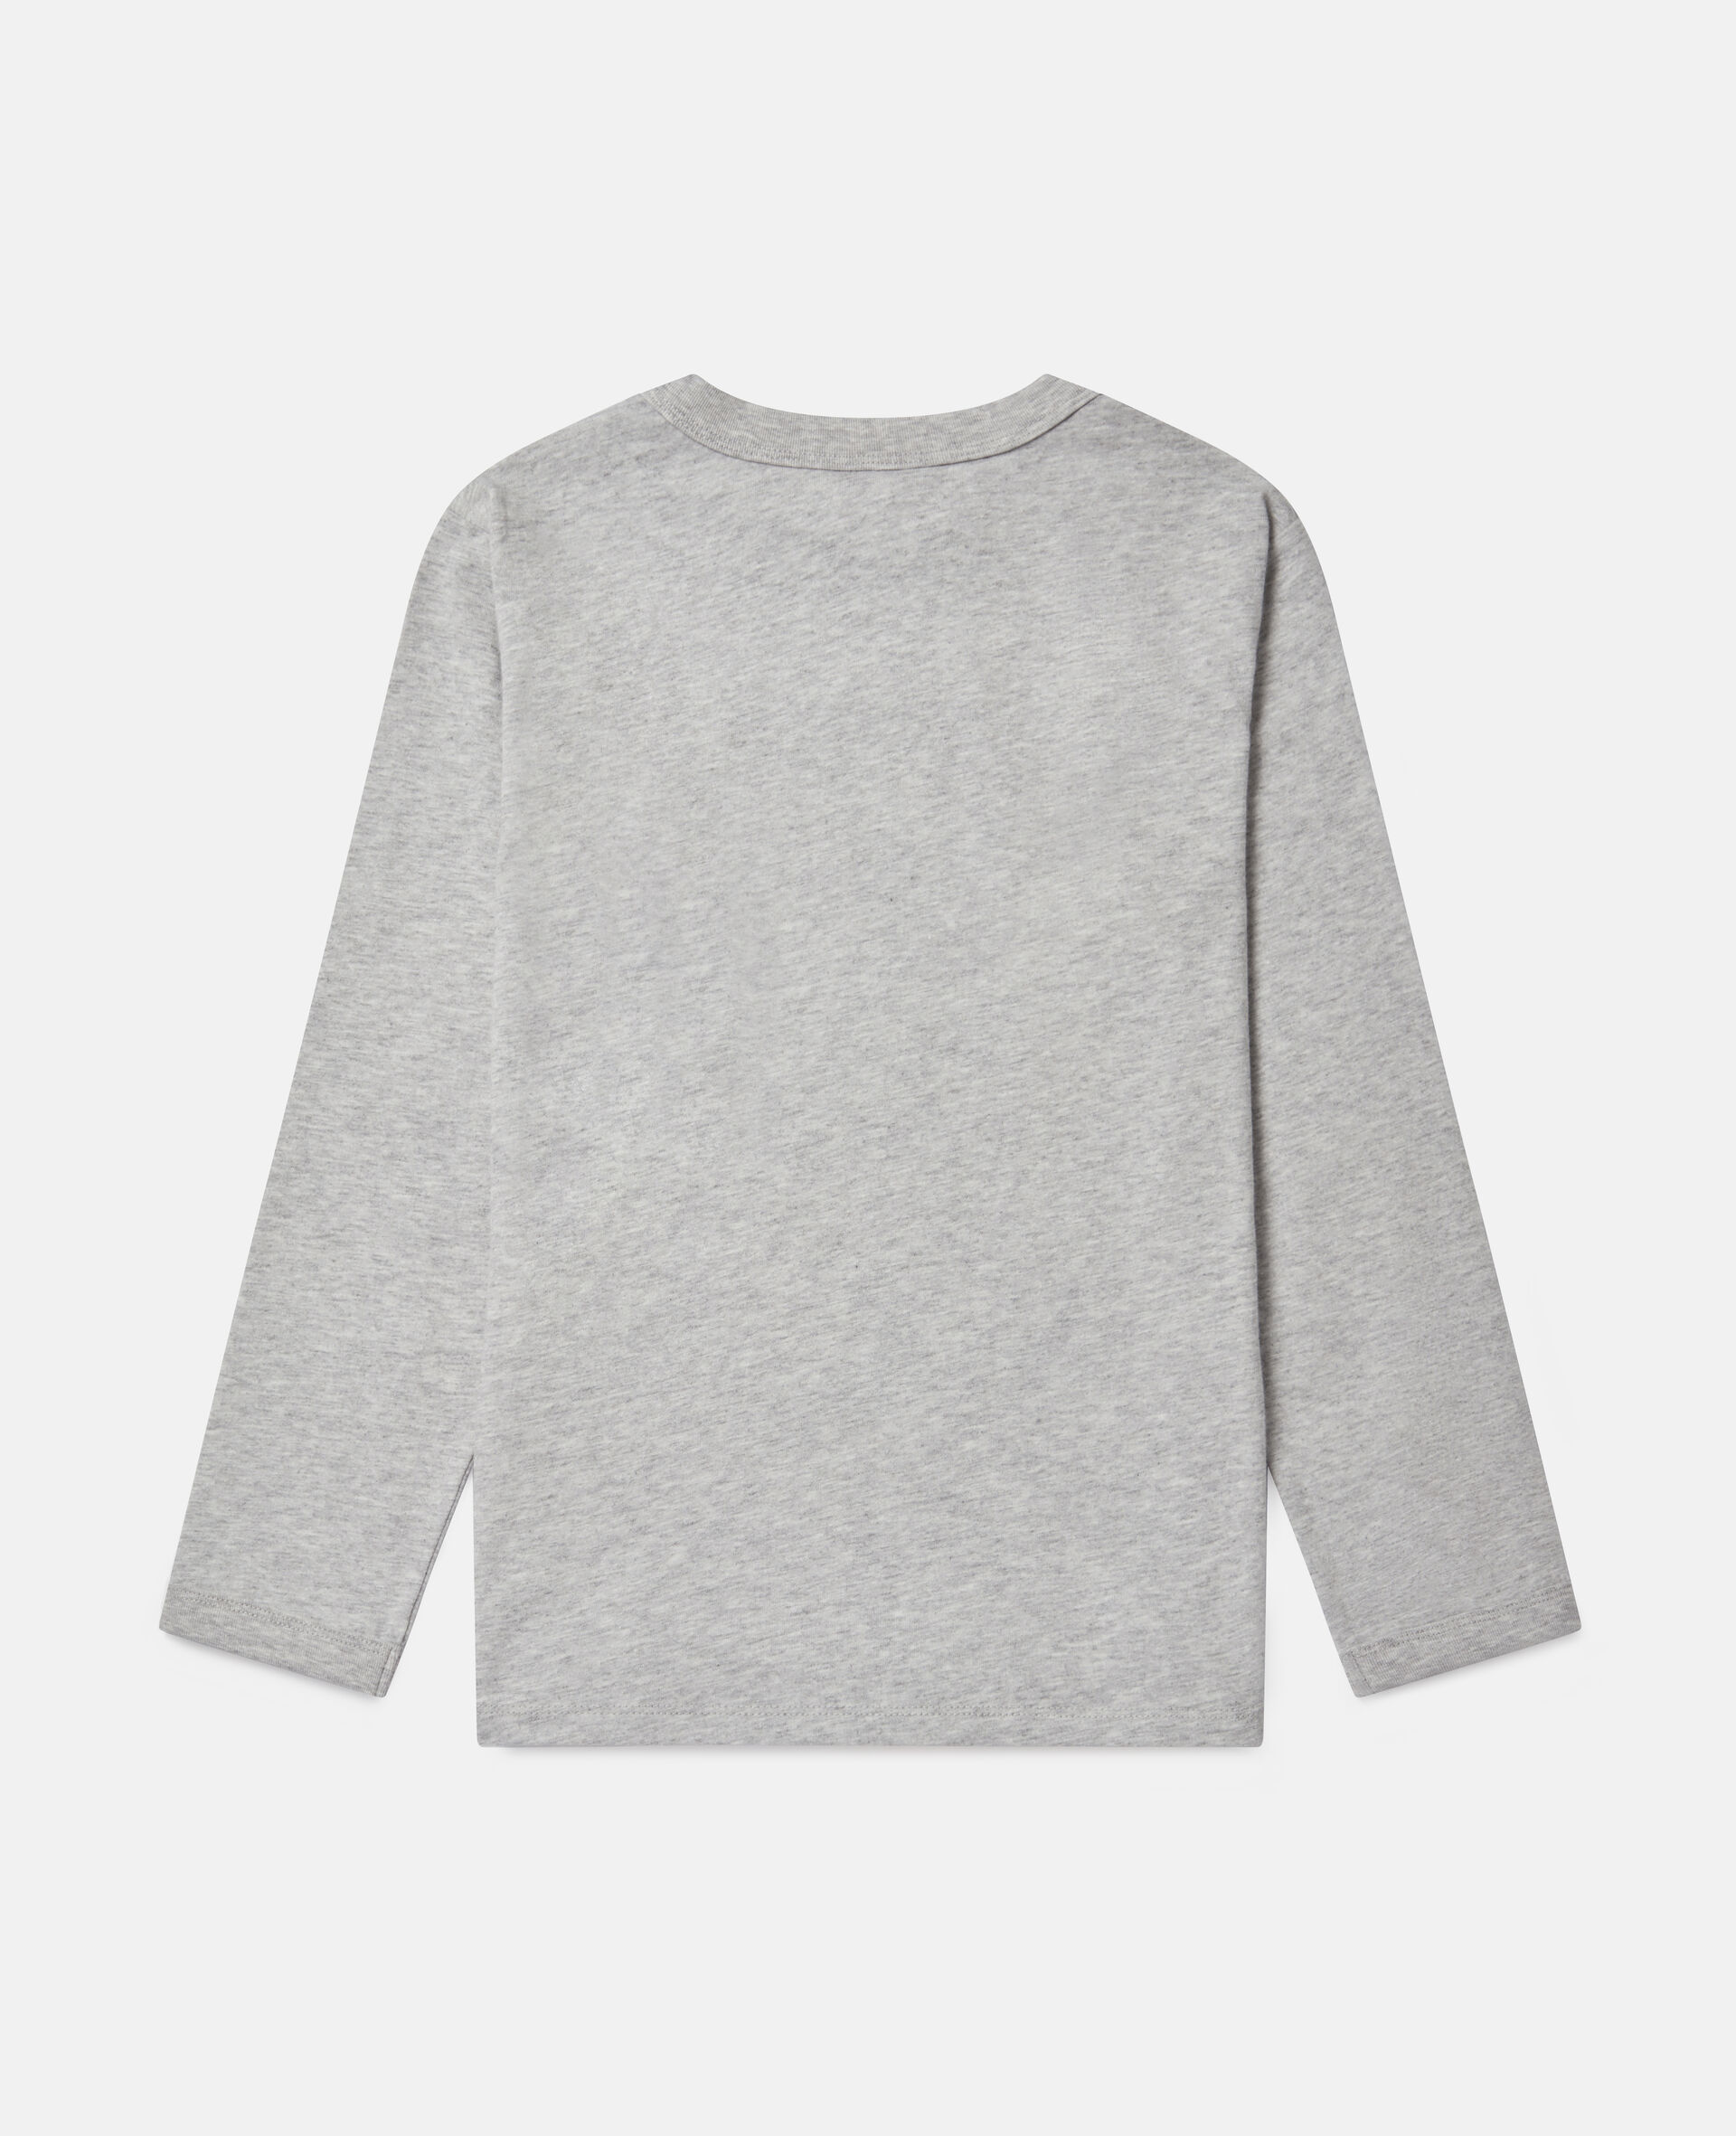 Oversized 'Eat My Dust' Top-Grey-large image number 3